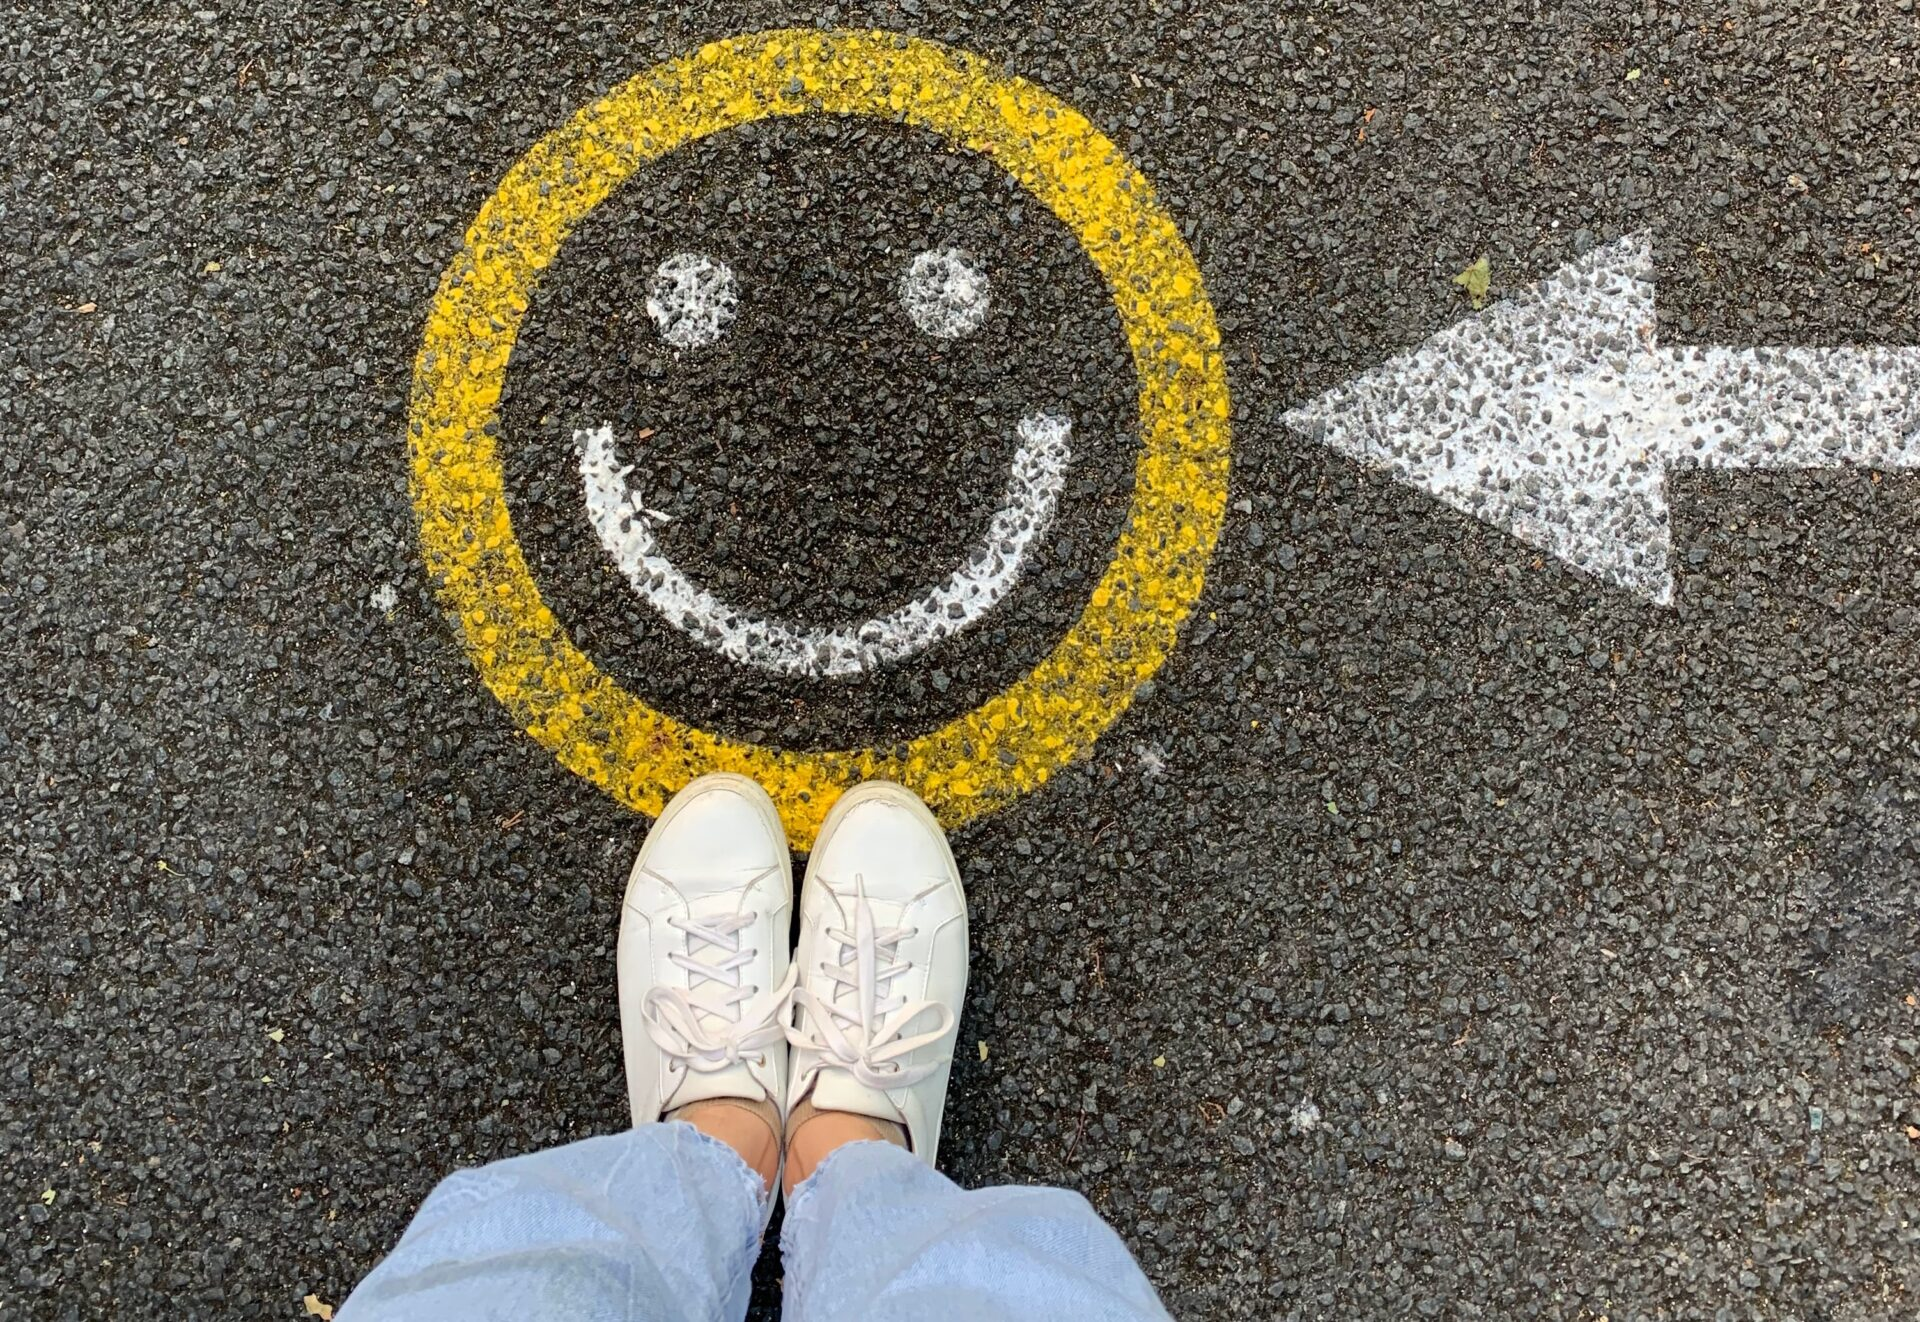 feet and a smily face painted on the road